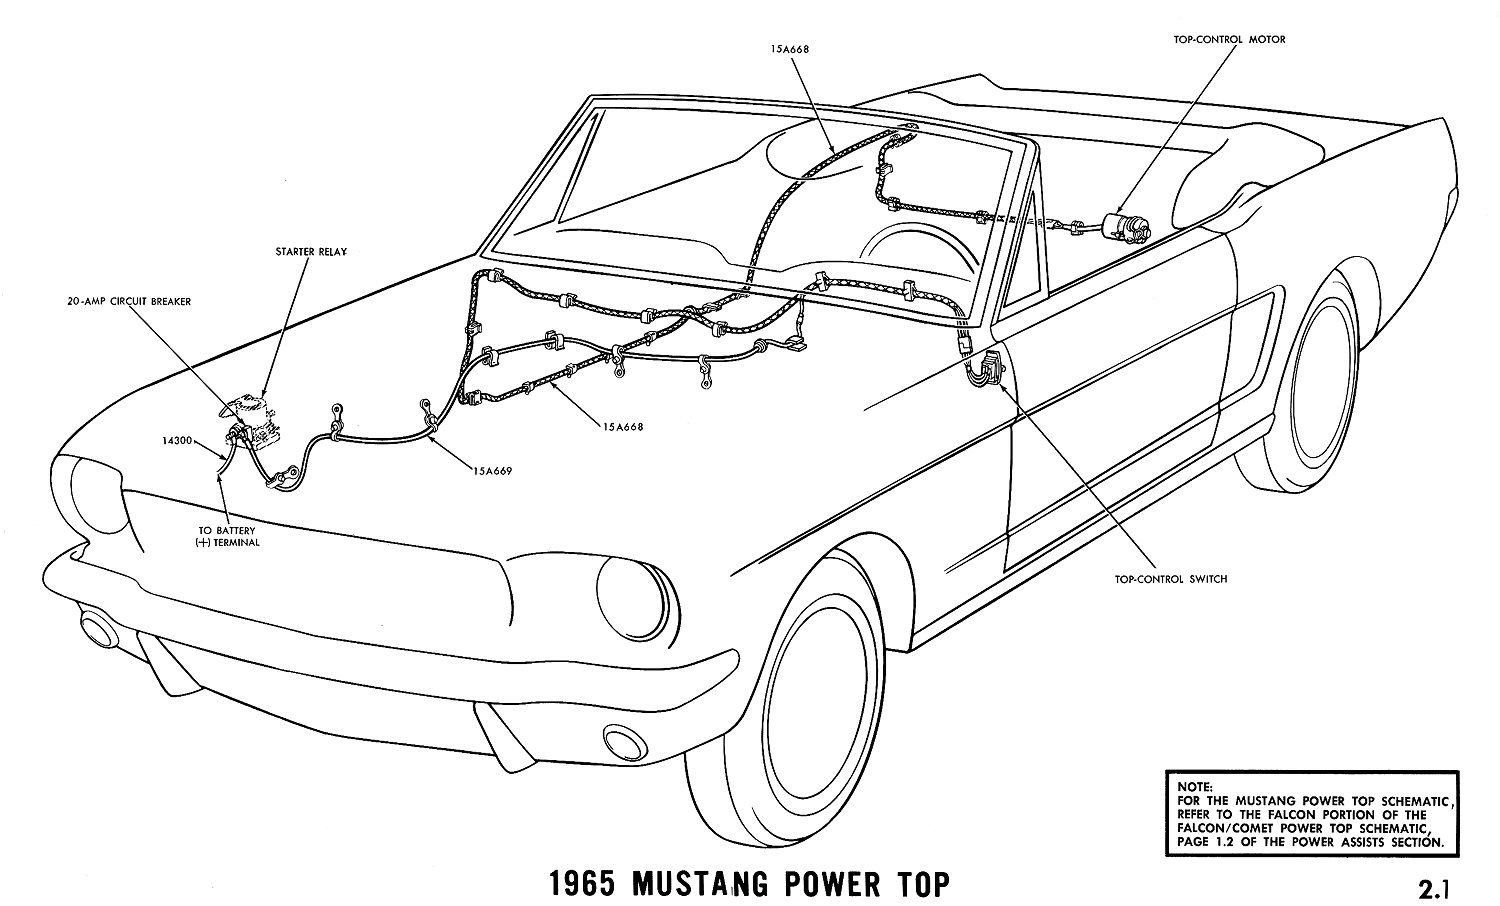 1965j 1965 mustang wiring diagrams average joe restoration 65 mustang radio wiring diagram at soozxer.org